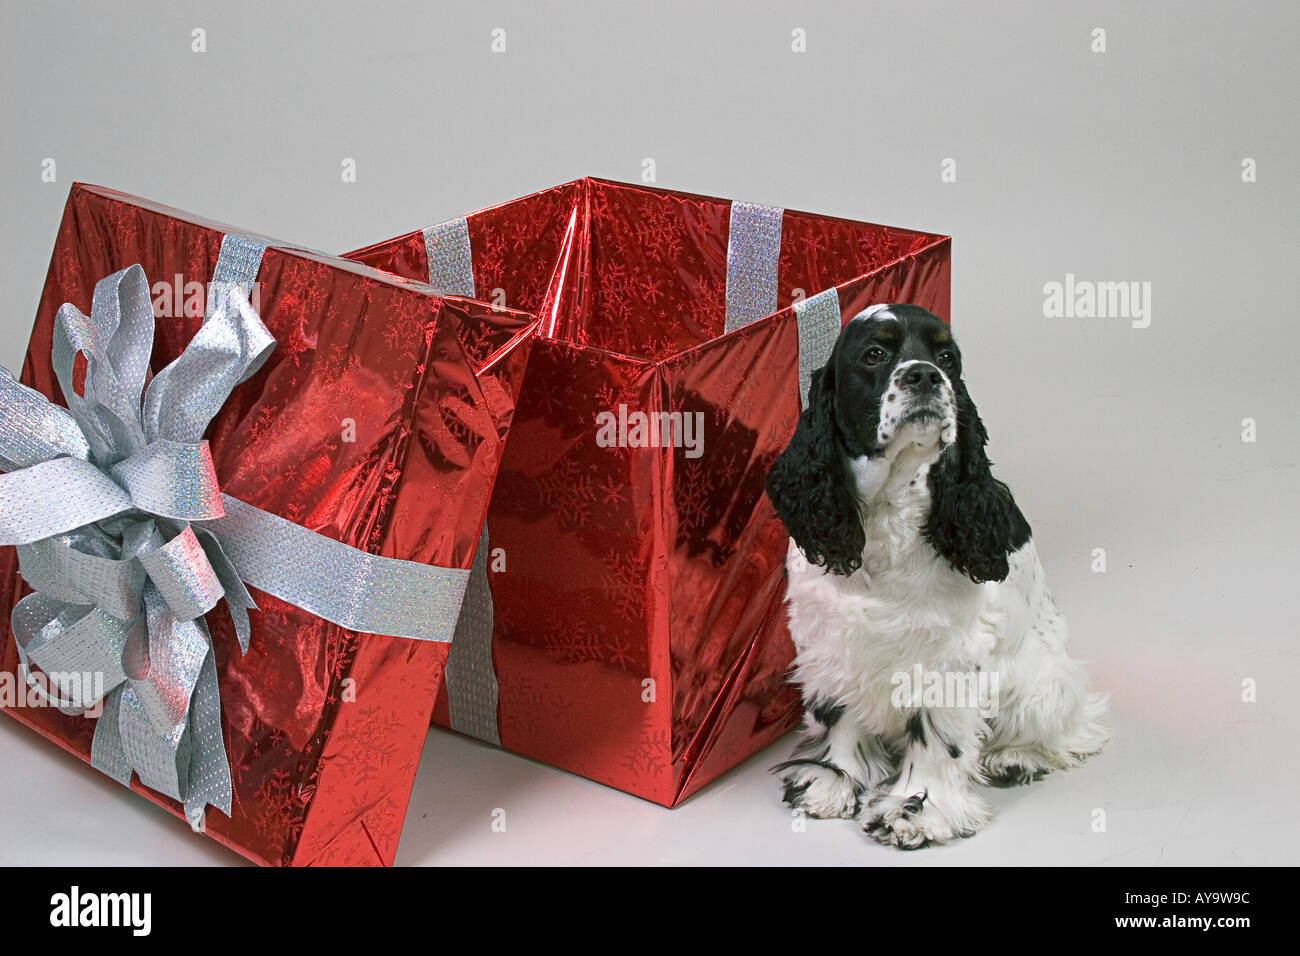 Black and white cocker spaniel dog next to an oversize red gift wrapped box all against a neutral backdrop - Stock Image